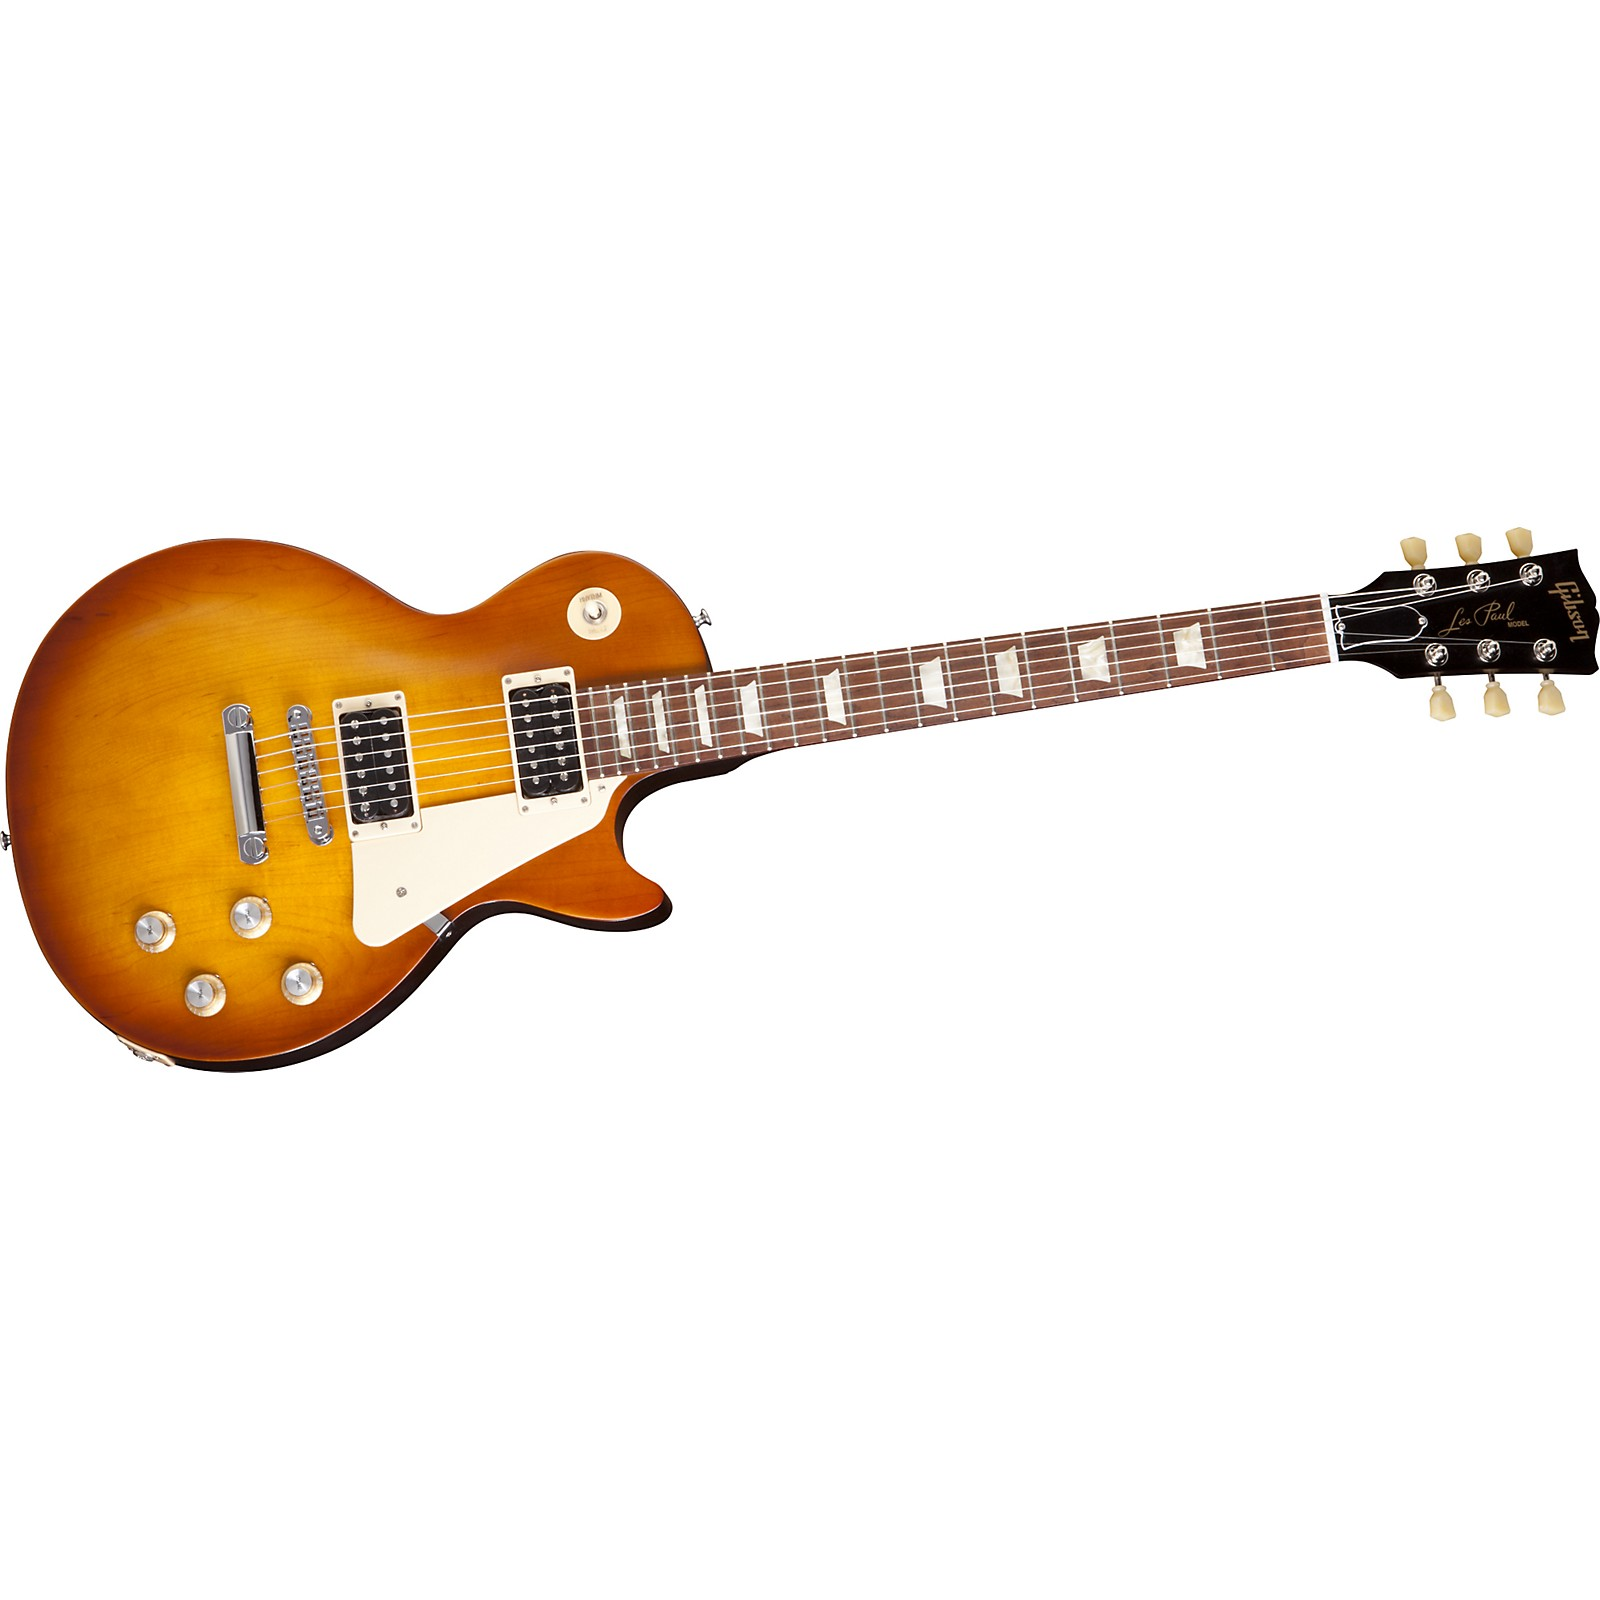 Gibson Les Paul Studio 50's Tribute Electric Guitar with Humbucker Pickups